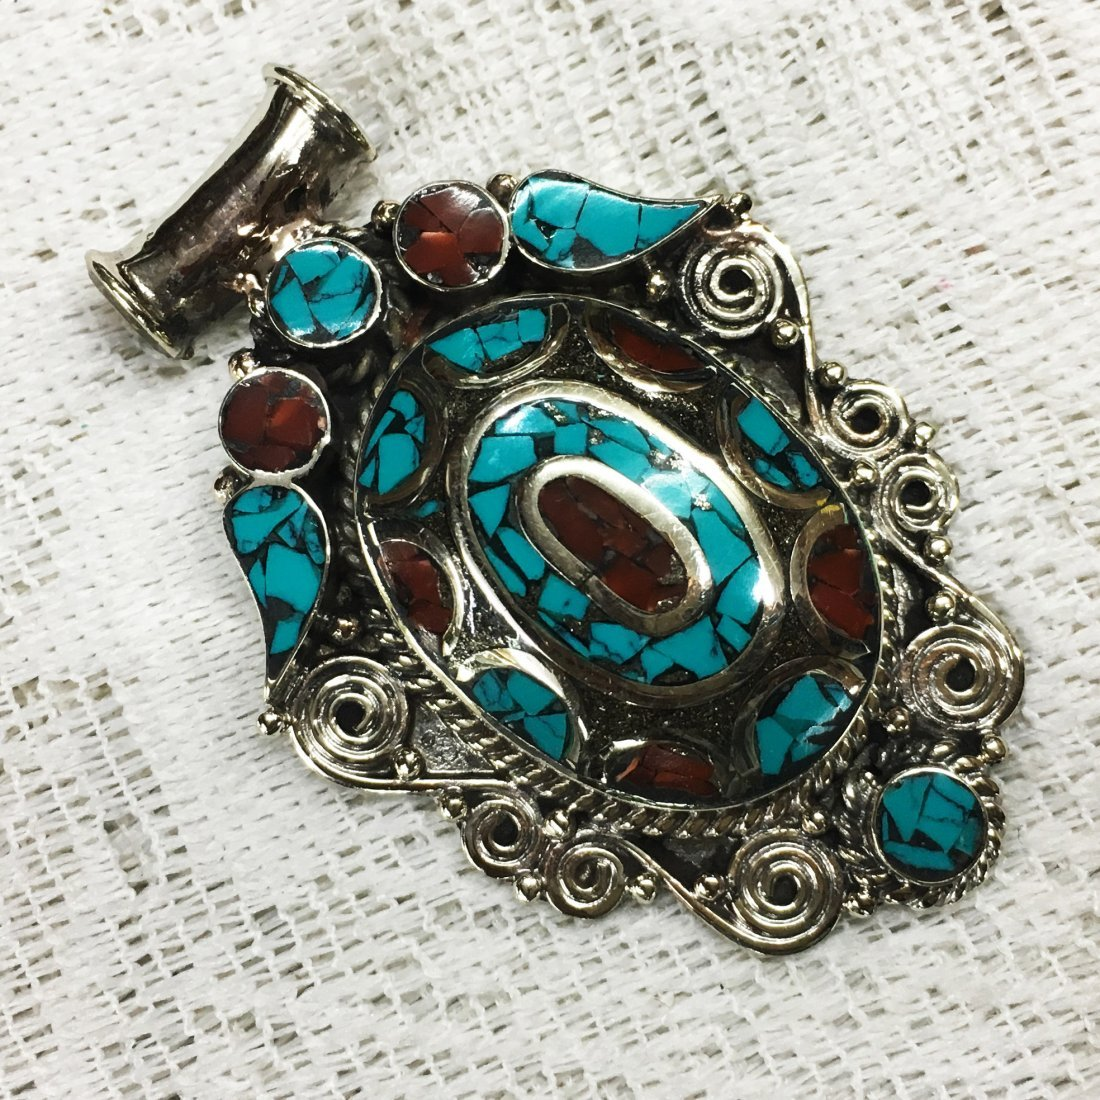 One-of-a-kind Beautiful Tribal Turquoise Pendant